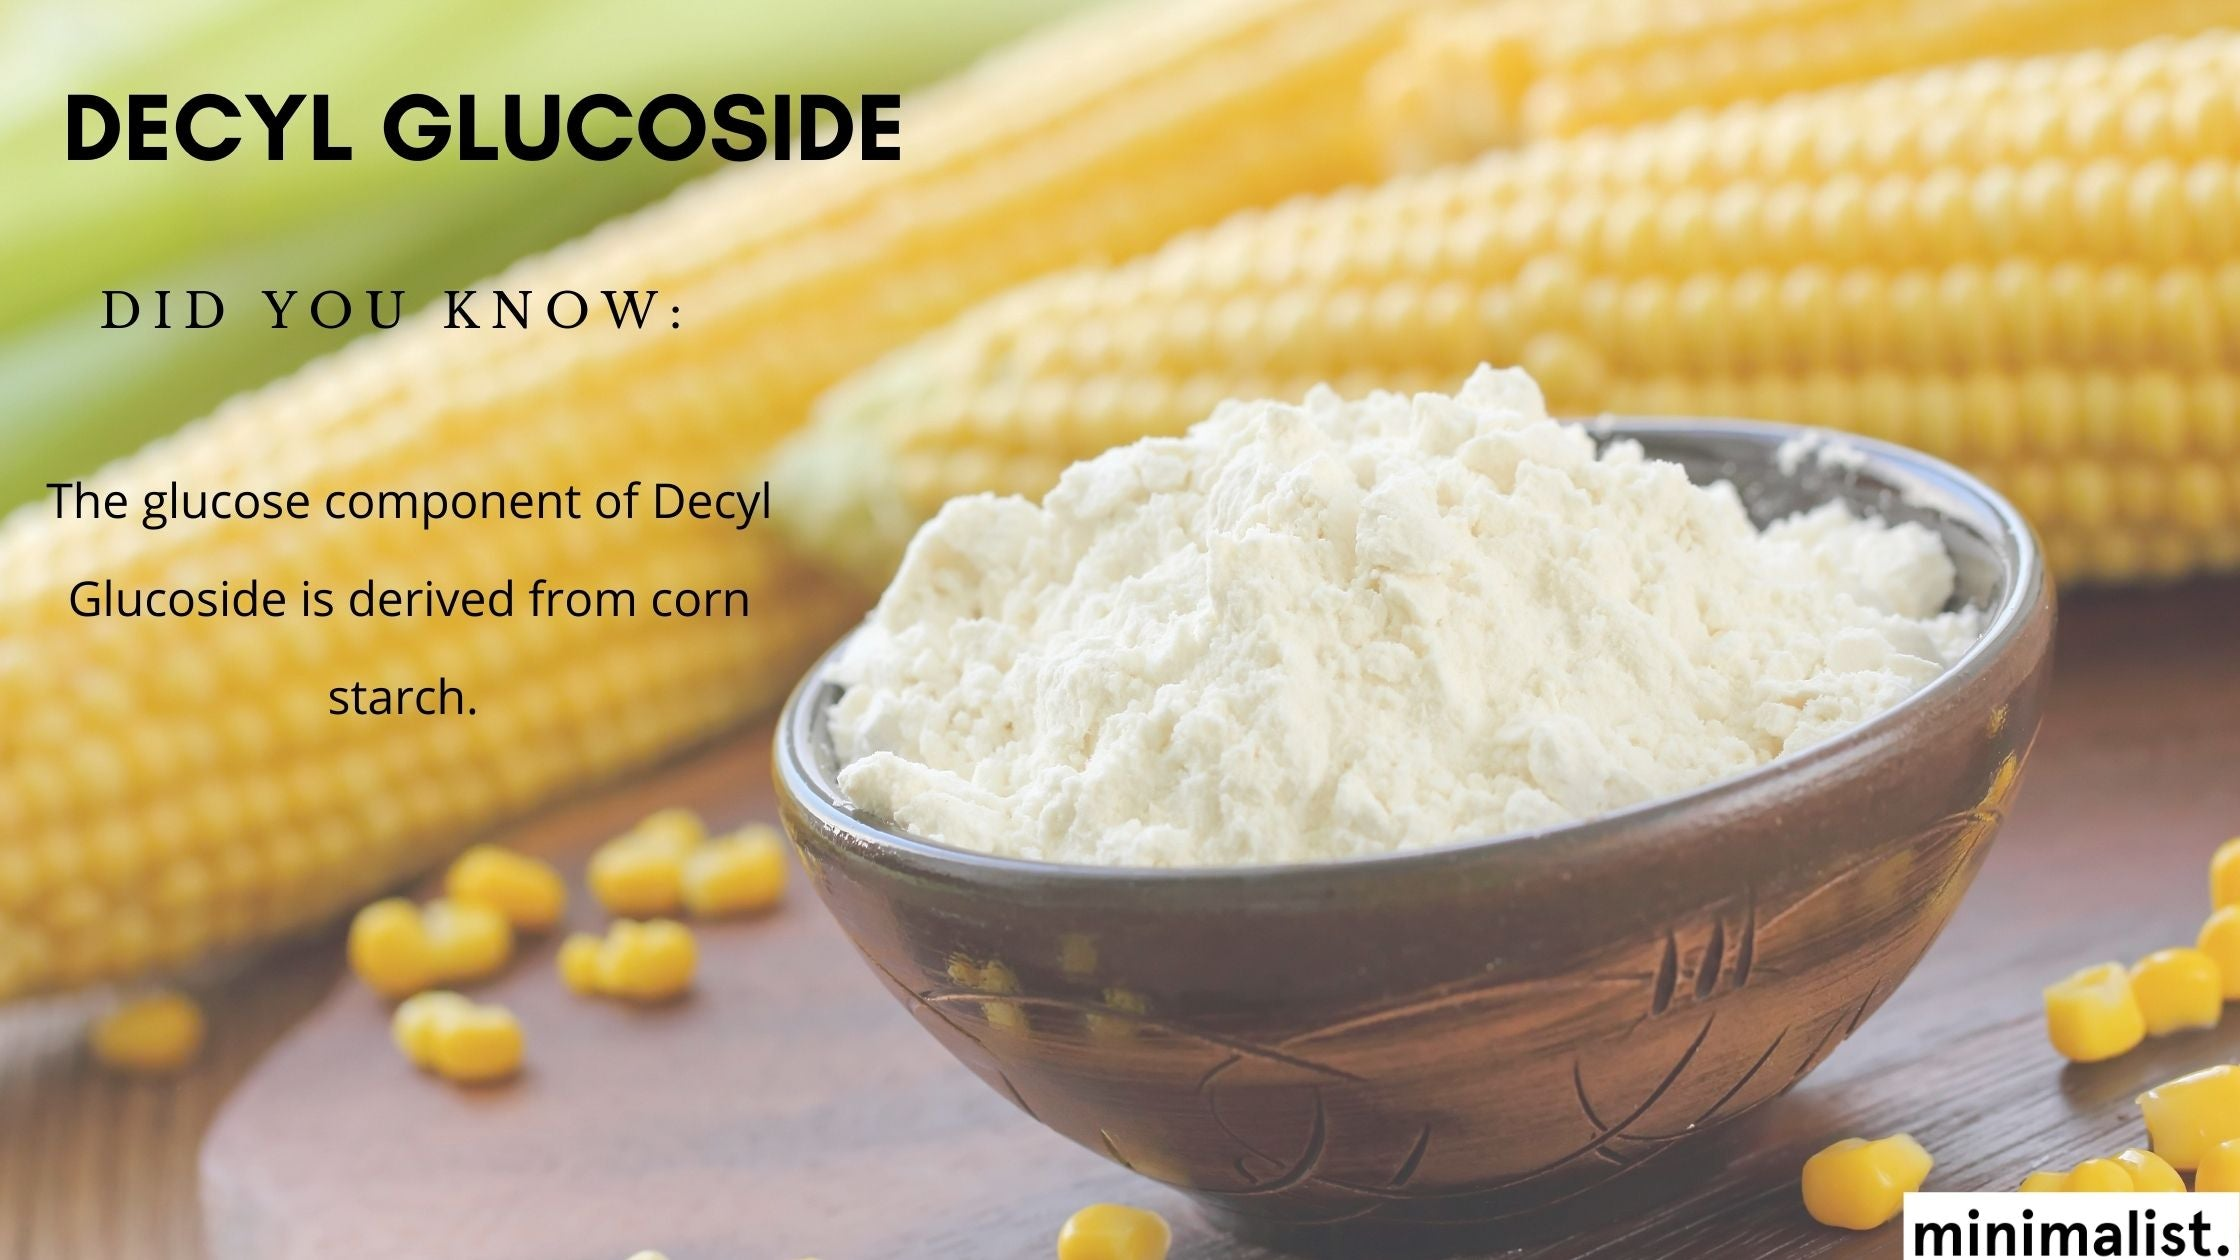 How is Decyl Glucoside obtained?